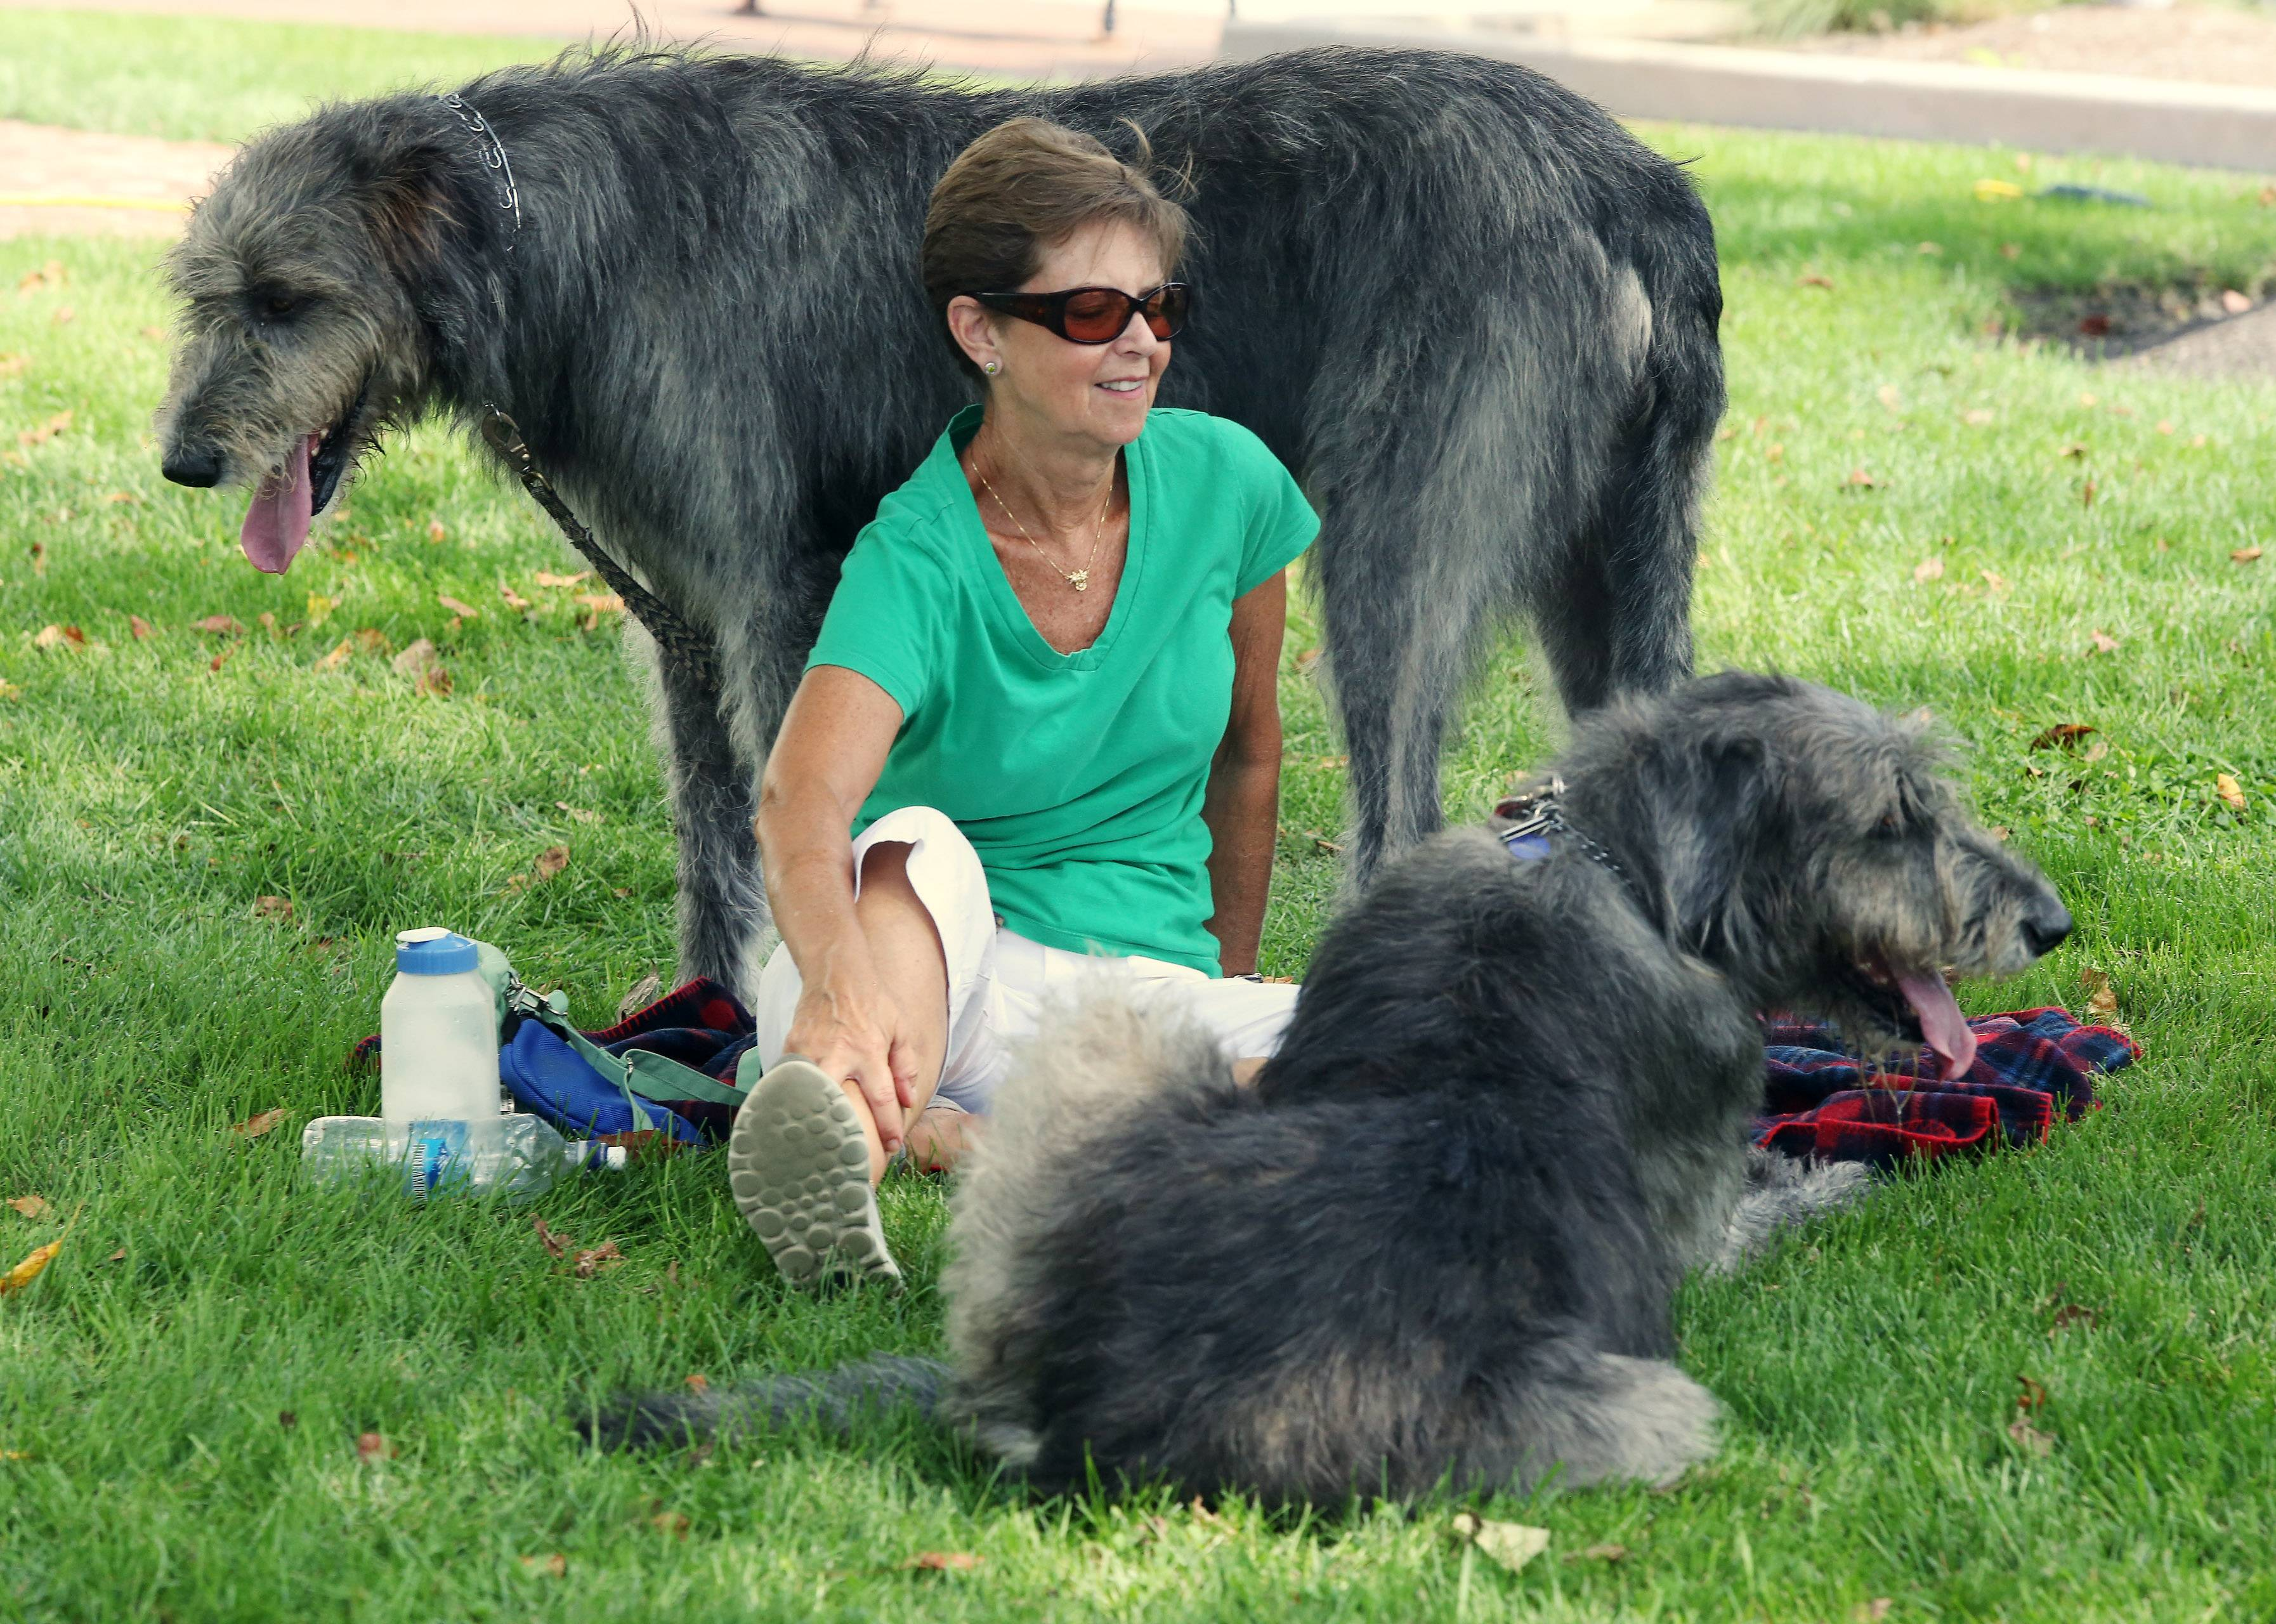 Gail Ryan of Geneva sits with her Irish Wolfhounds, Callie and Shealan, as tehy listen to Irish music during the Long Grove Irish Days Festival Sunday in downtown Long Grove. The festival featured live music, Irish dancers, an Irish dog competition and food.